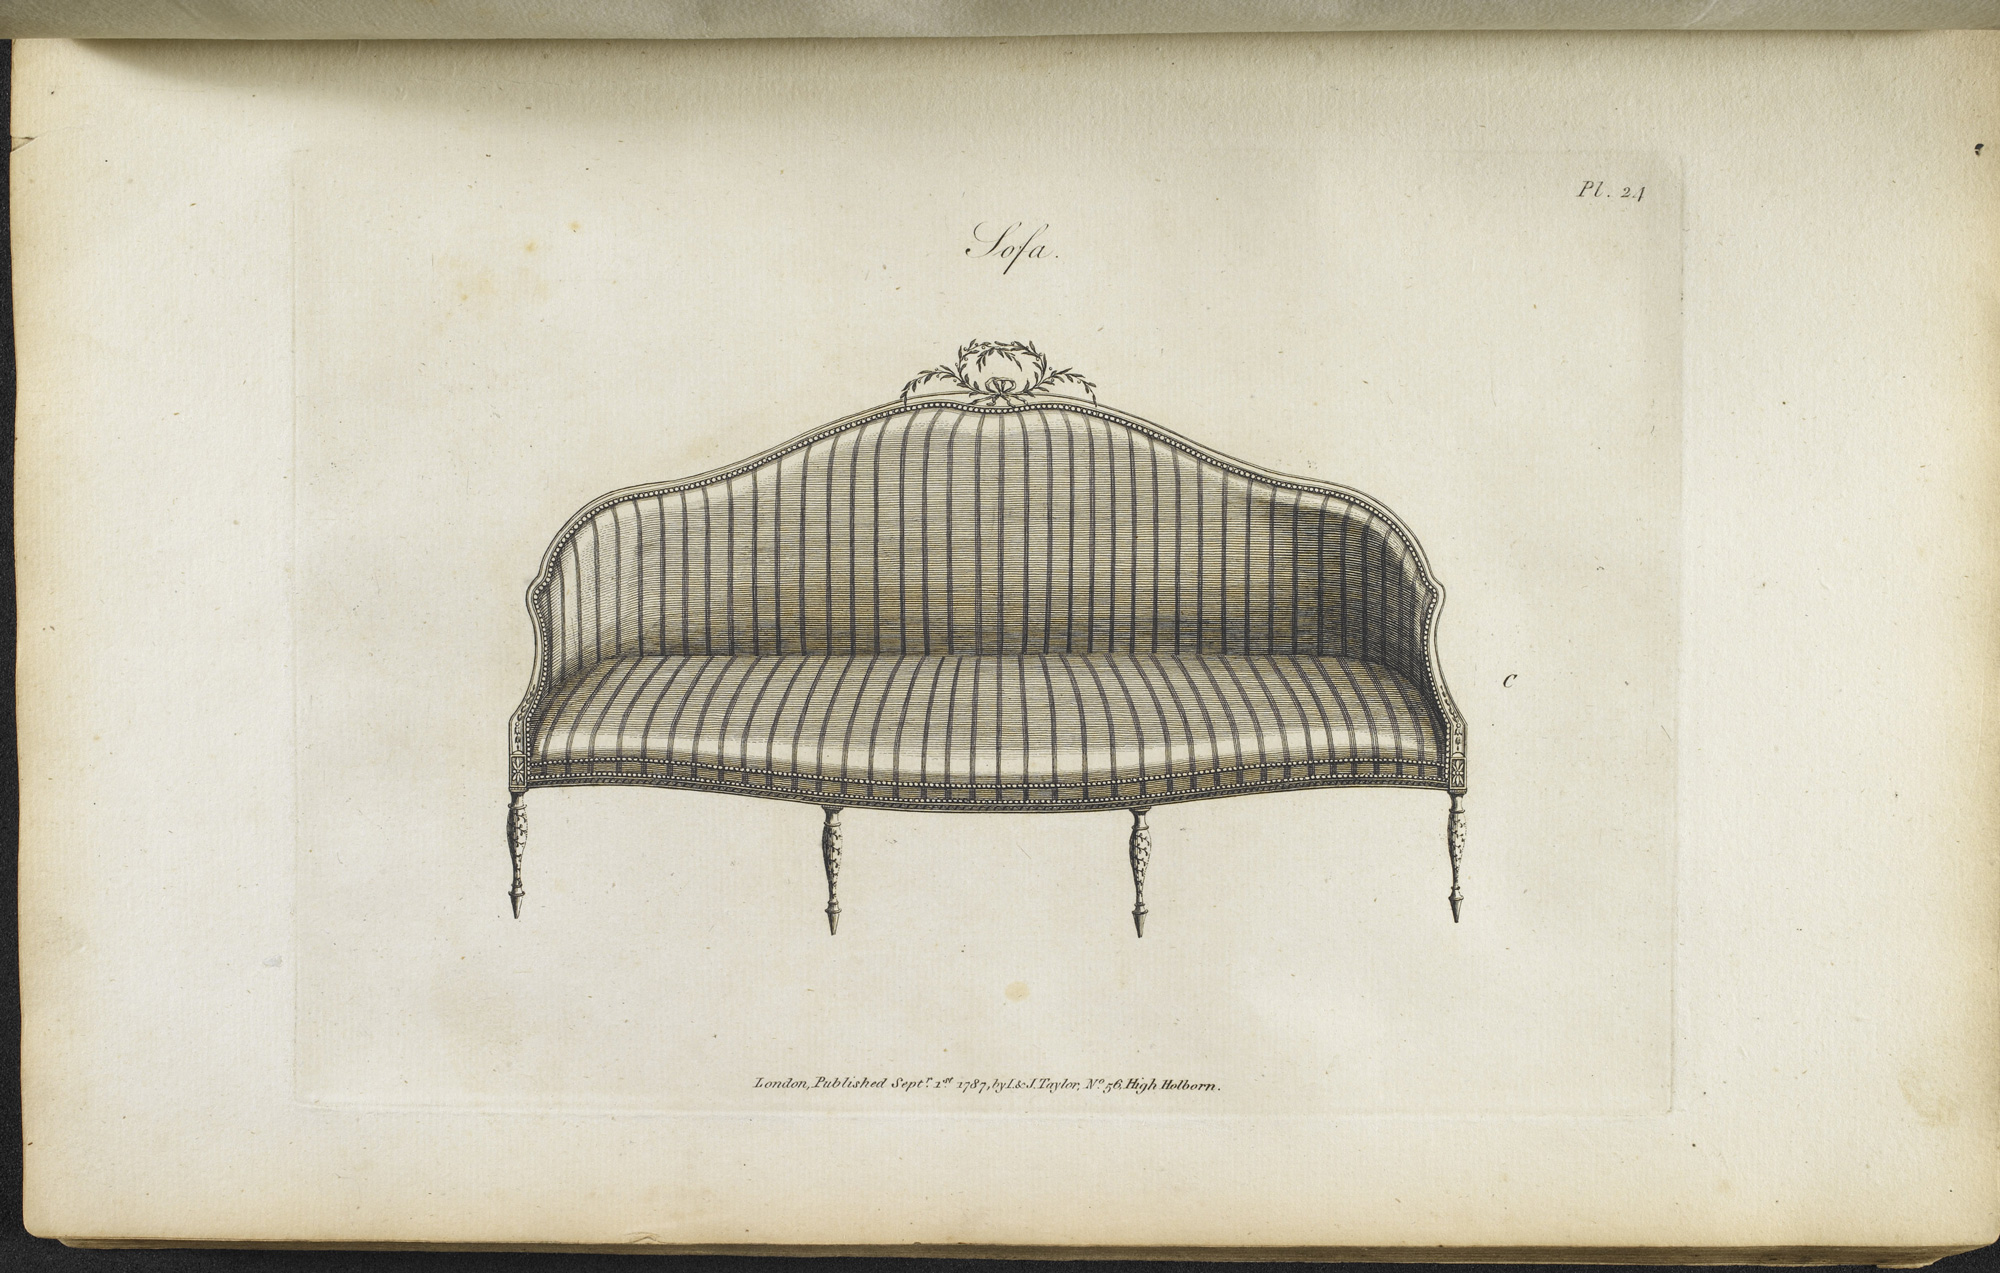 Seating design, shown in the furniture catalogue, from The Cabinet Maker's Guide